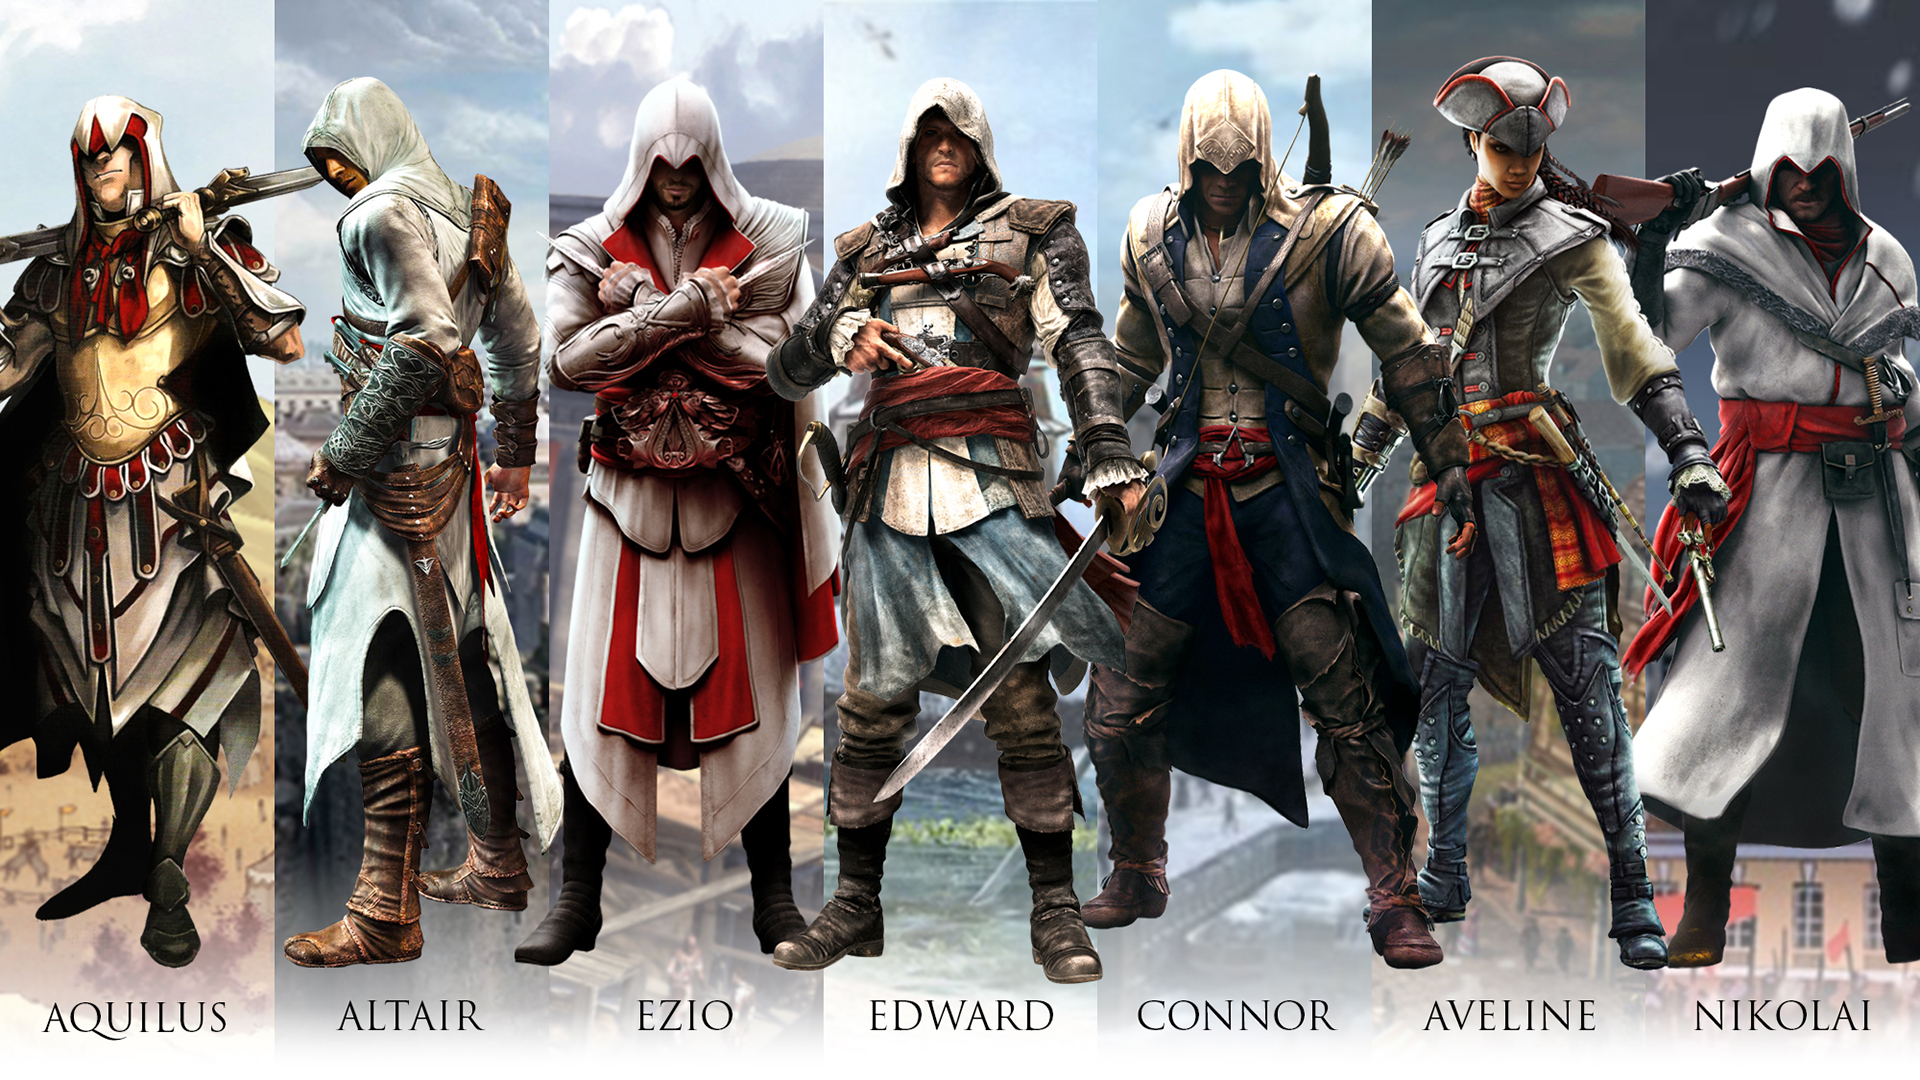 All Hero In Assassin S Creed Series By Santap555 On Deviantart